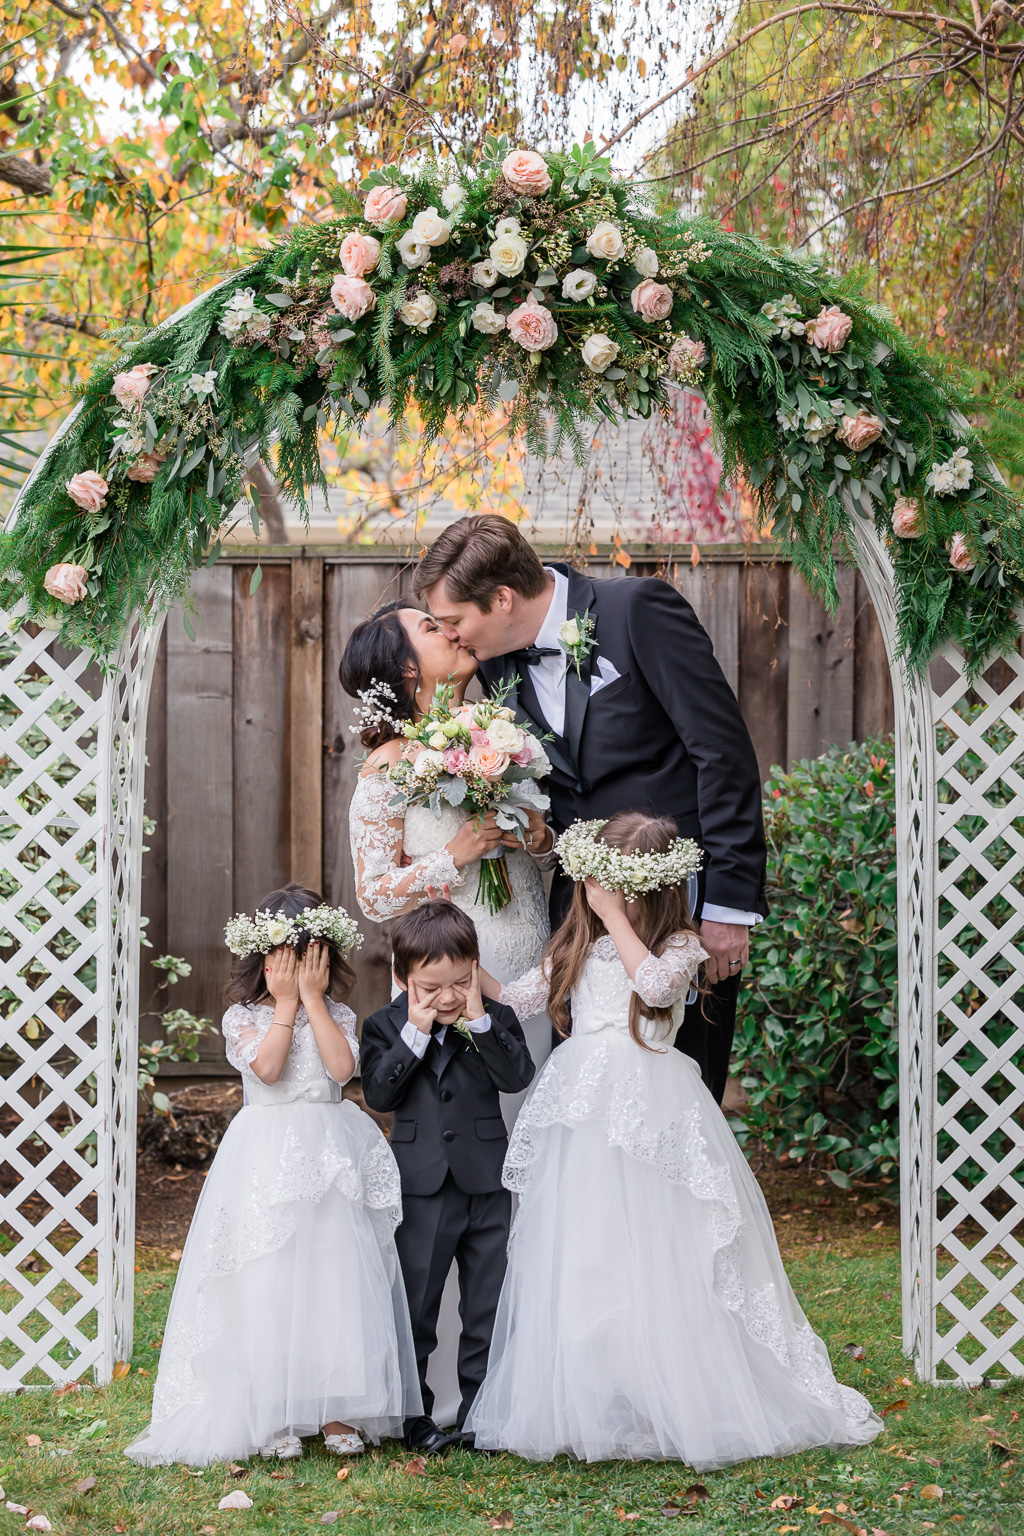 cute family photo with kids in front of wedding arbor arch